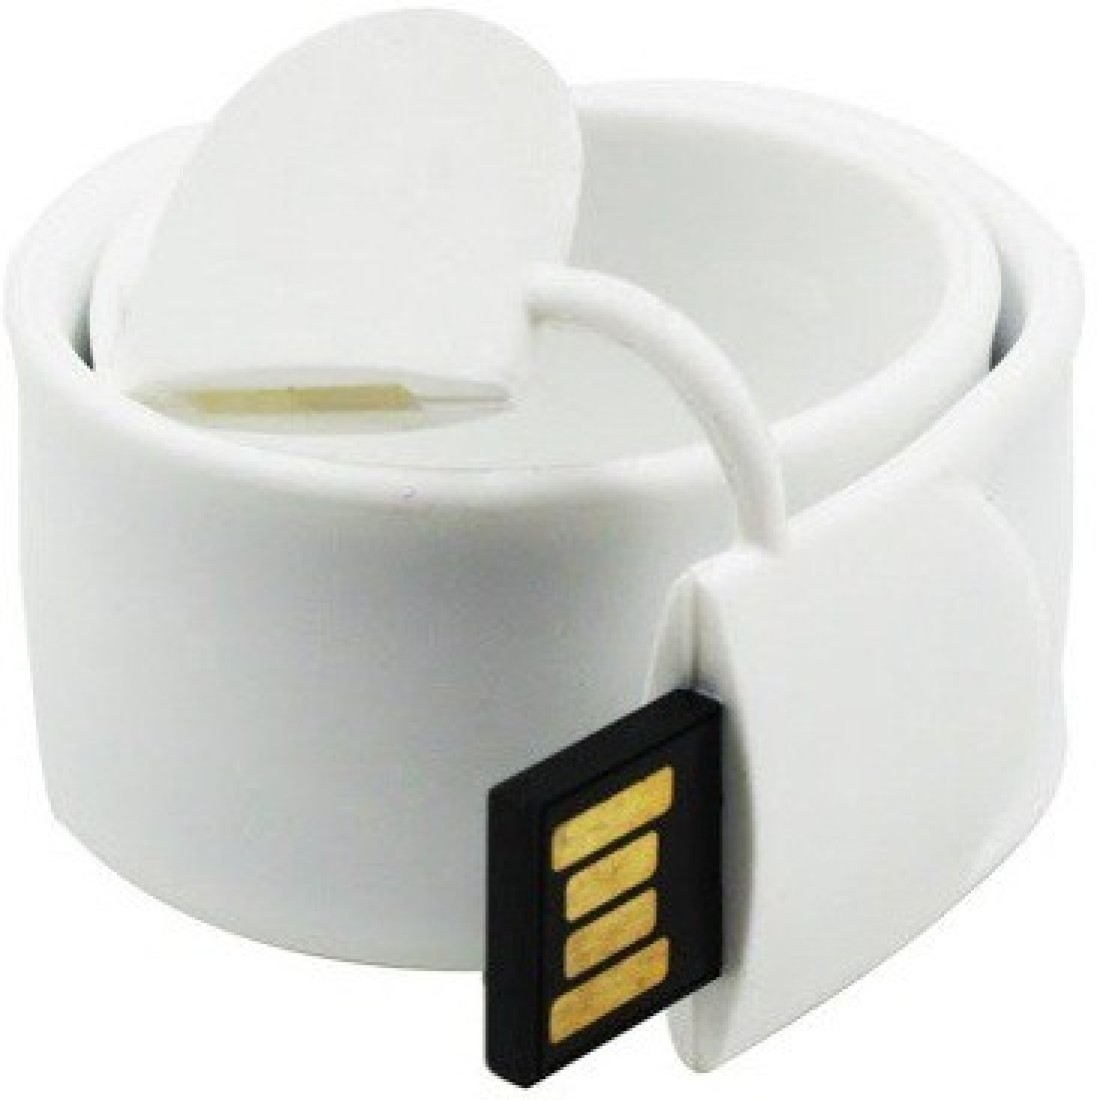 View eShop Genuine PVC Bracelet Shaped Slap Wrist Band USB Flash Drive 16 GB Pen Drive(White) Price Online(eShop)